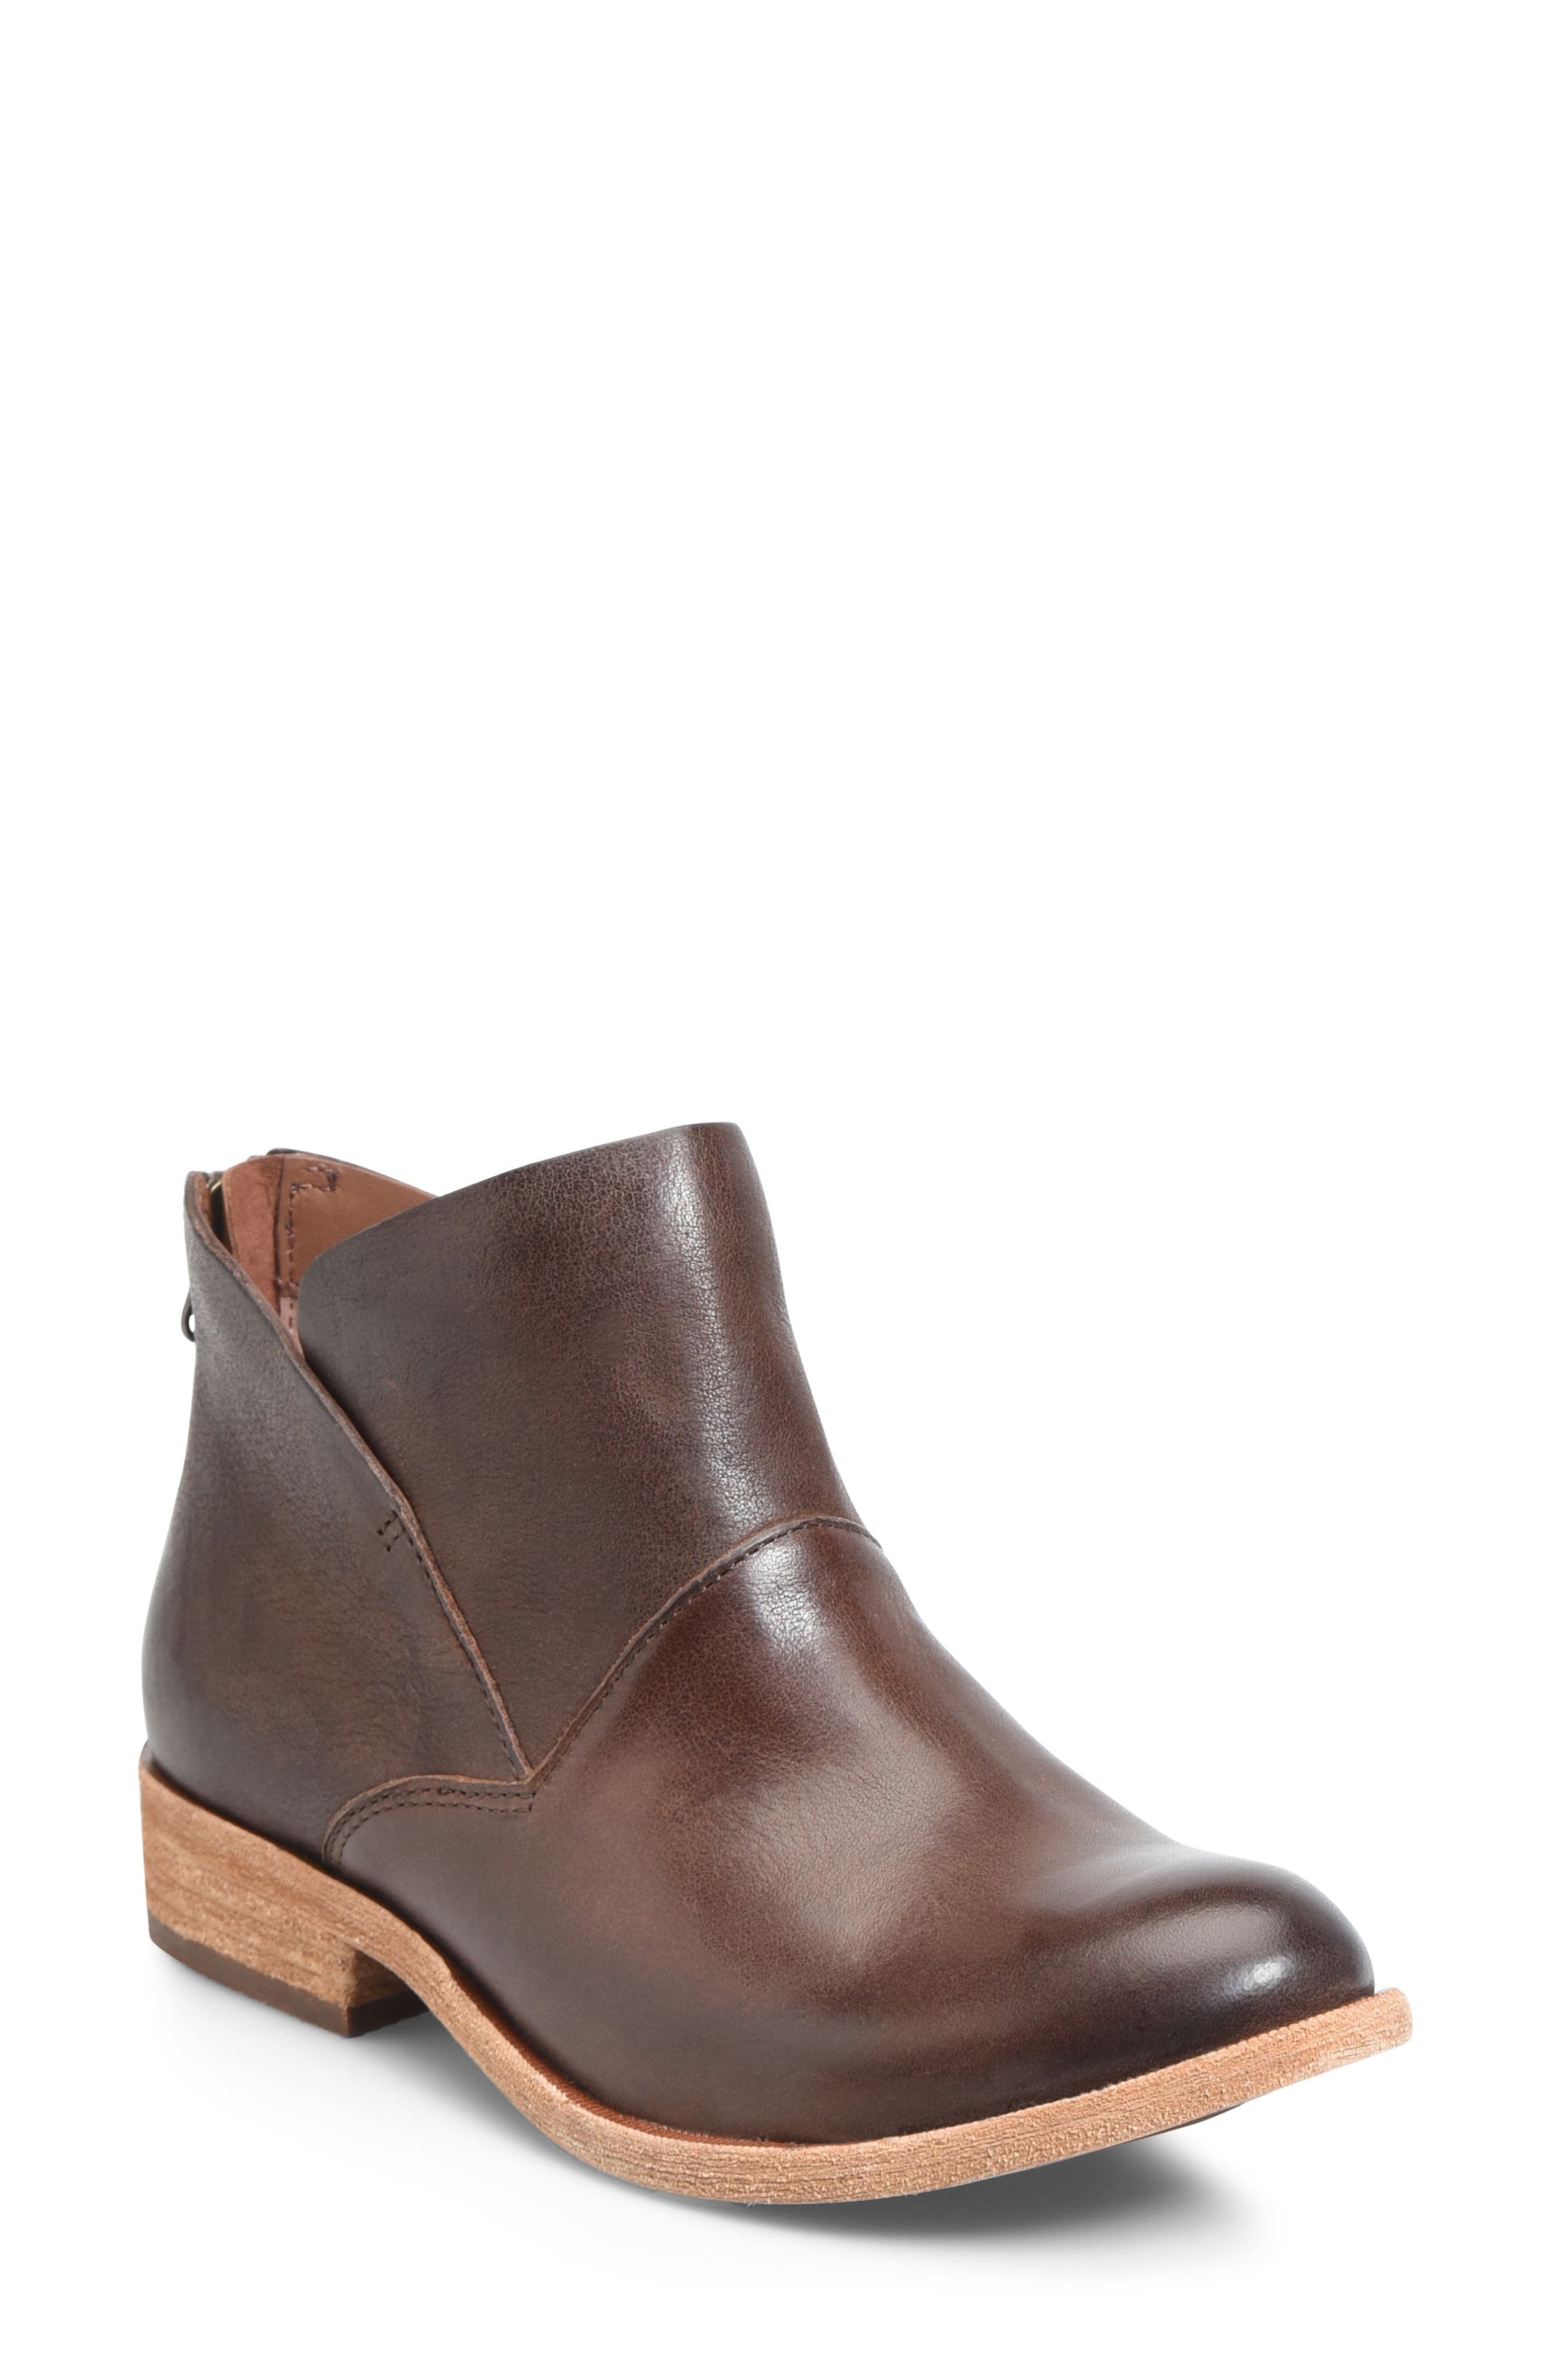 Ryder Ankle Boot,                         Main,                         color, DARK BROWN LEATHER